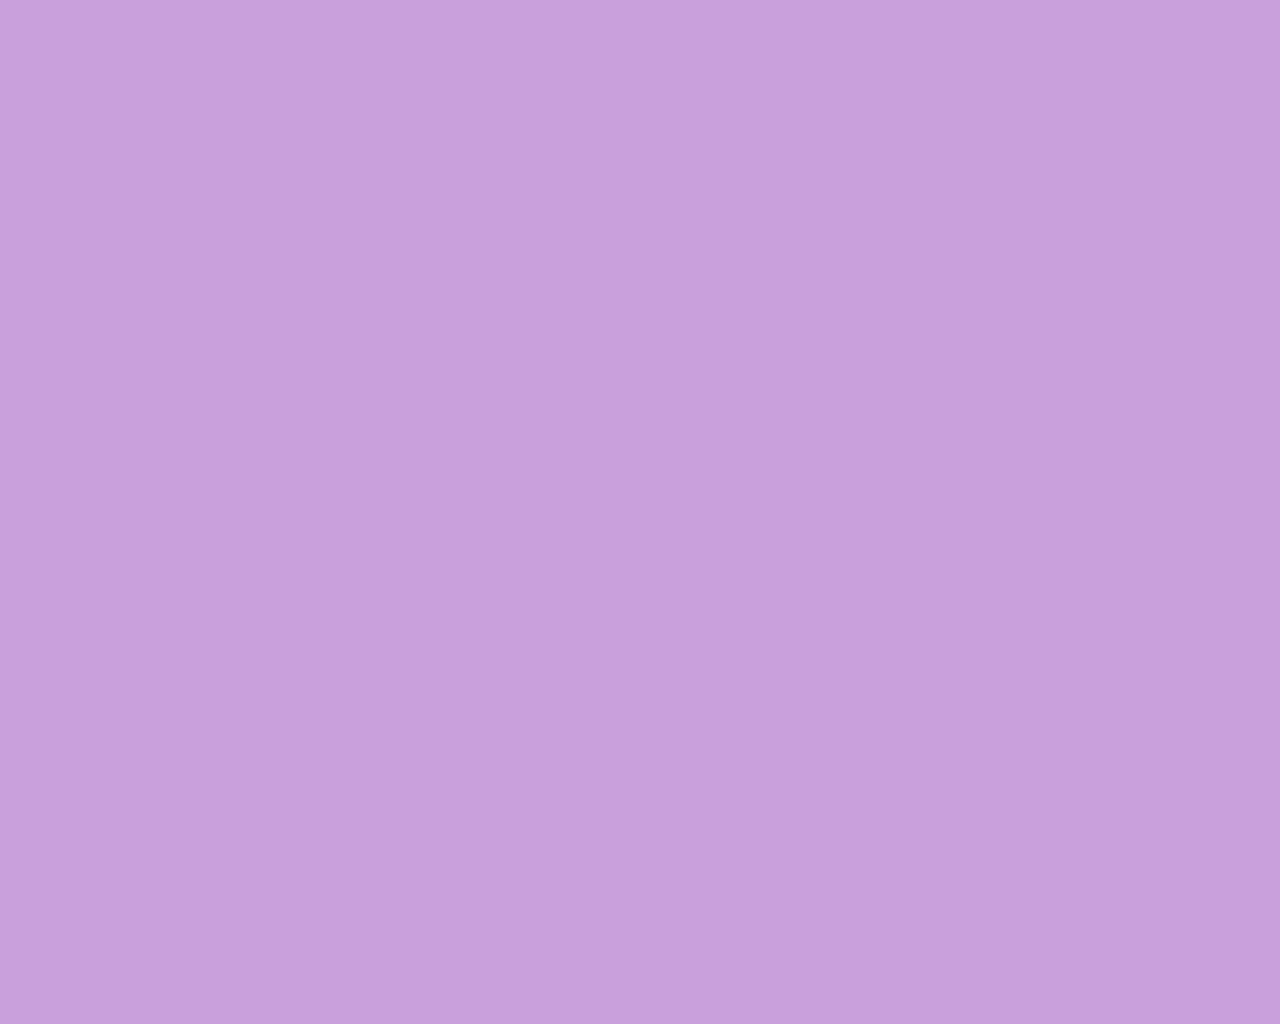 1280x1024 Wisteria Solid Color Background